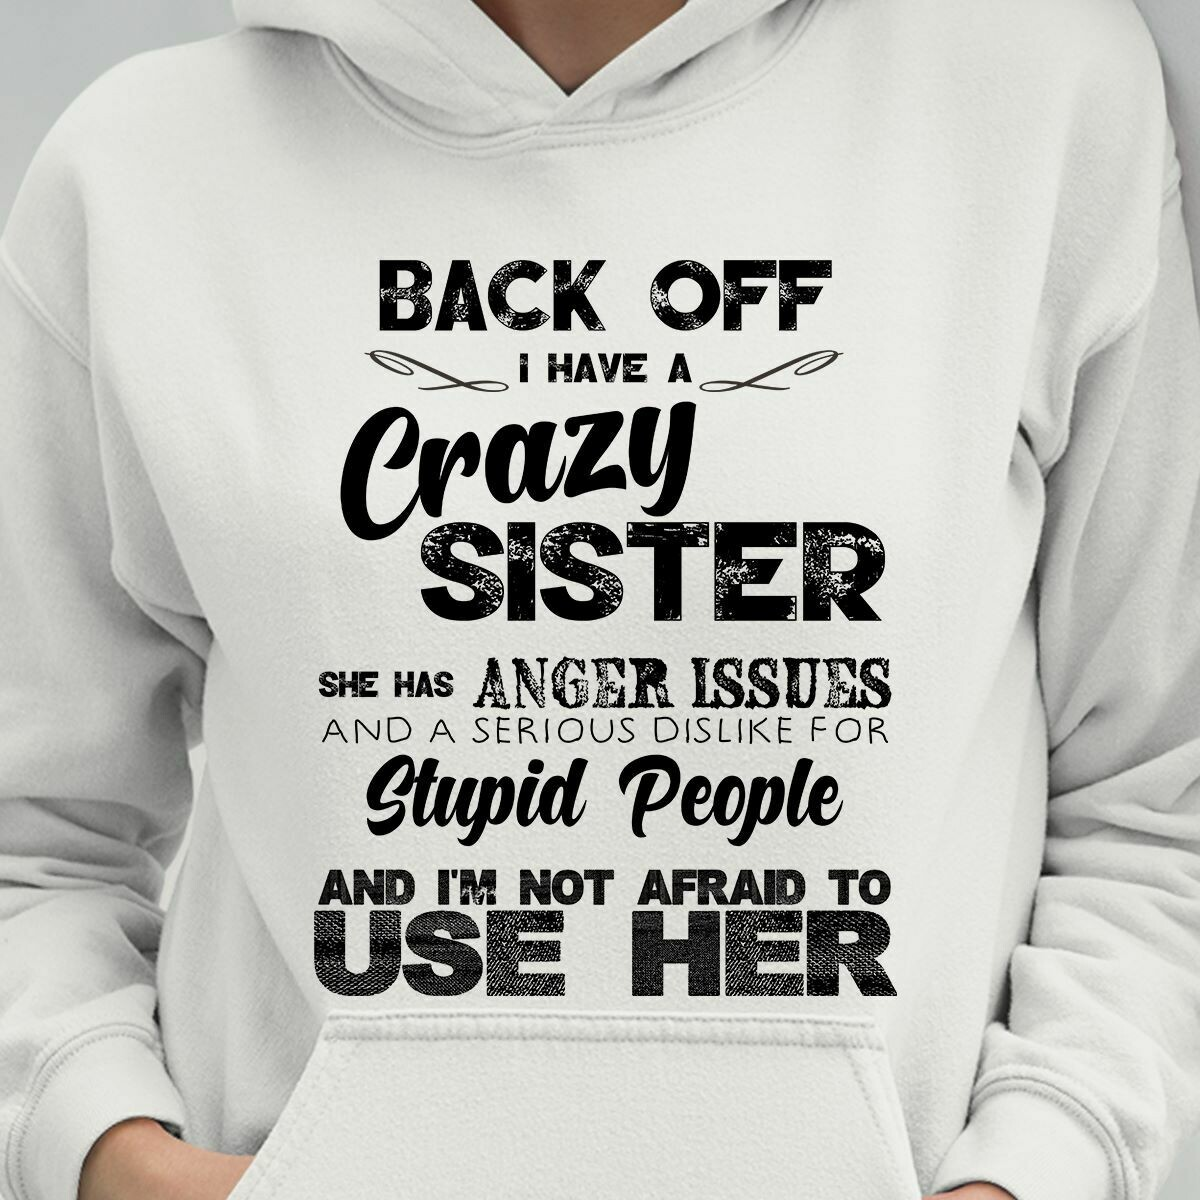 Back Off  I Have A Crazy Sister, Sister Shirt, Sister Gift, Sibling Shirt, Brother Shirt, Big Sister, Little Sister, Crazy Sister shirt